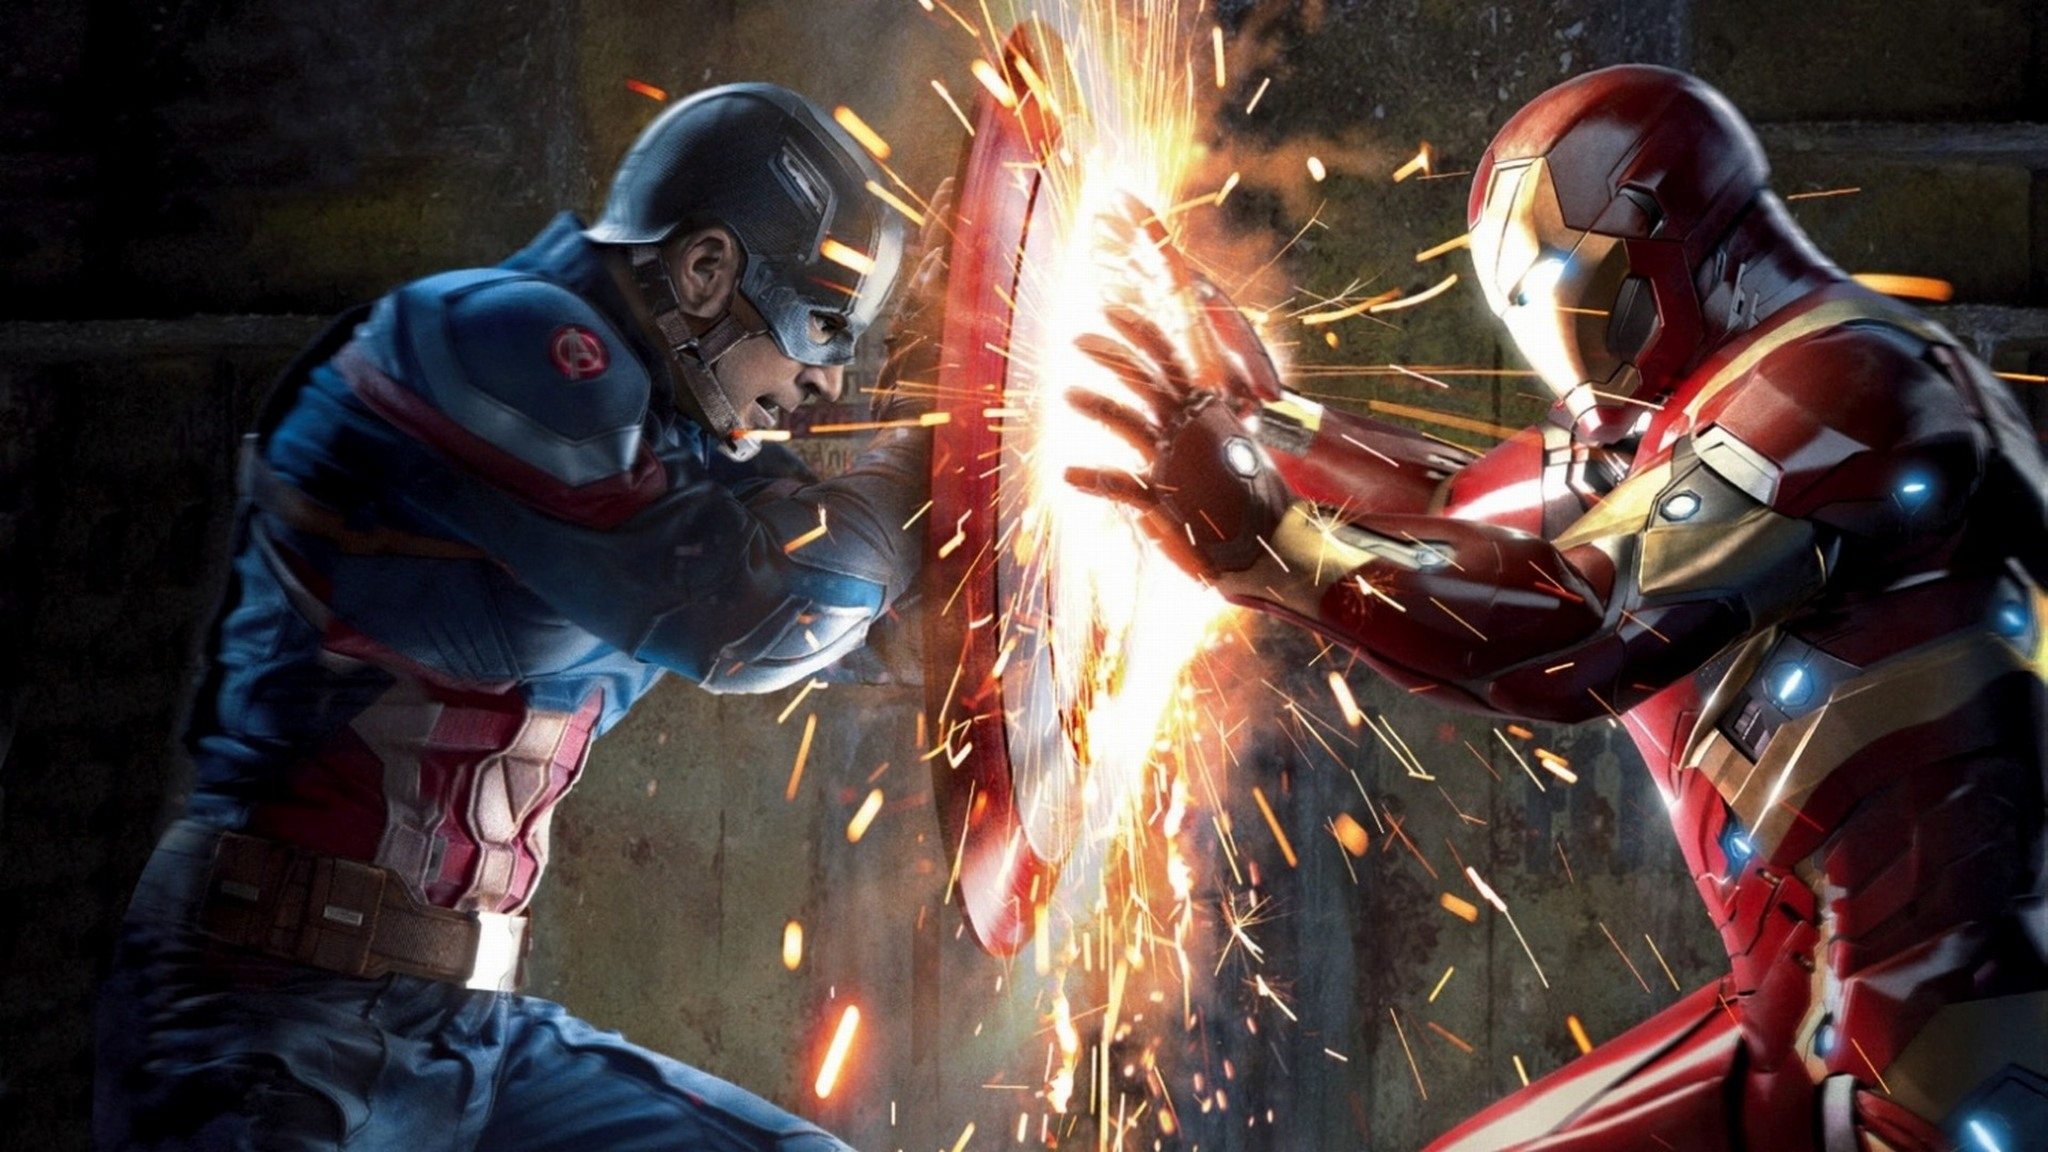 captain america vs iron man wallpaper  2048x1152 Captain America Vs Iron Man Civil War 2048x1152 Resolution ...